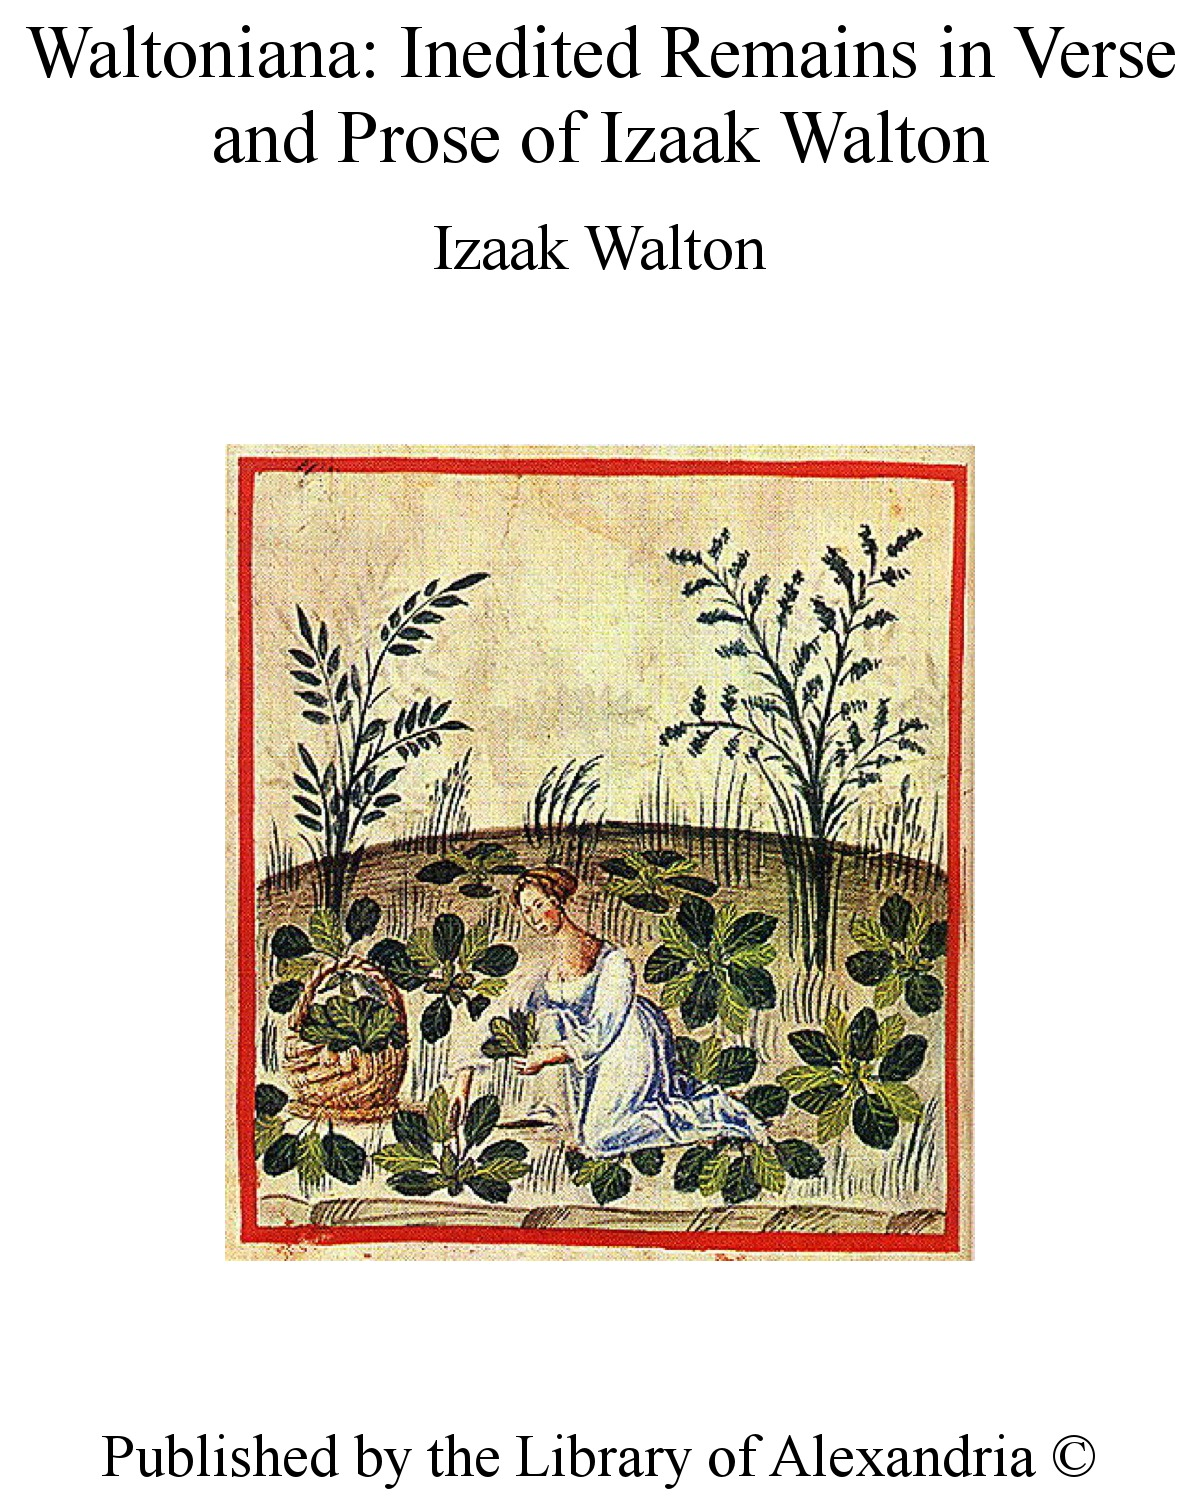 Waltoniana: Inedited Remains in Verse and Prose of Izaak Walton